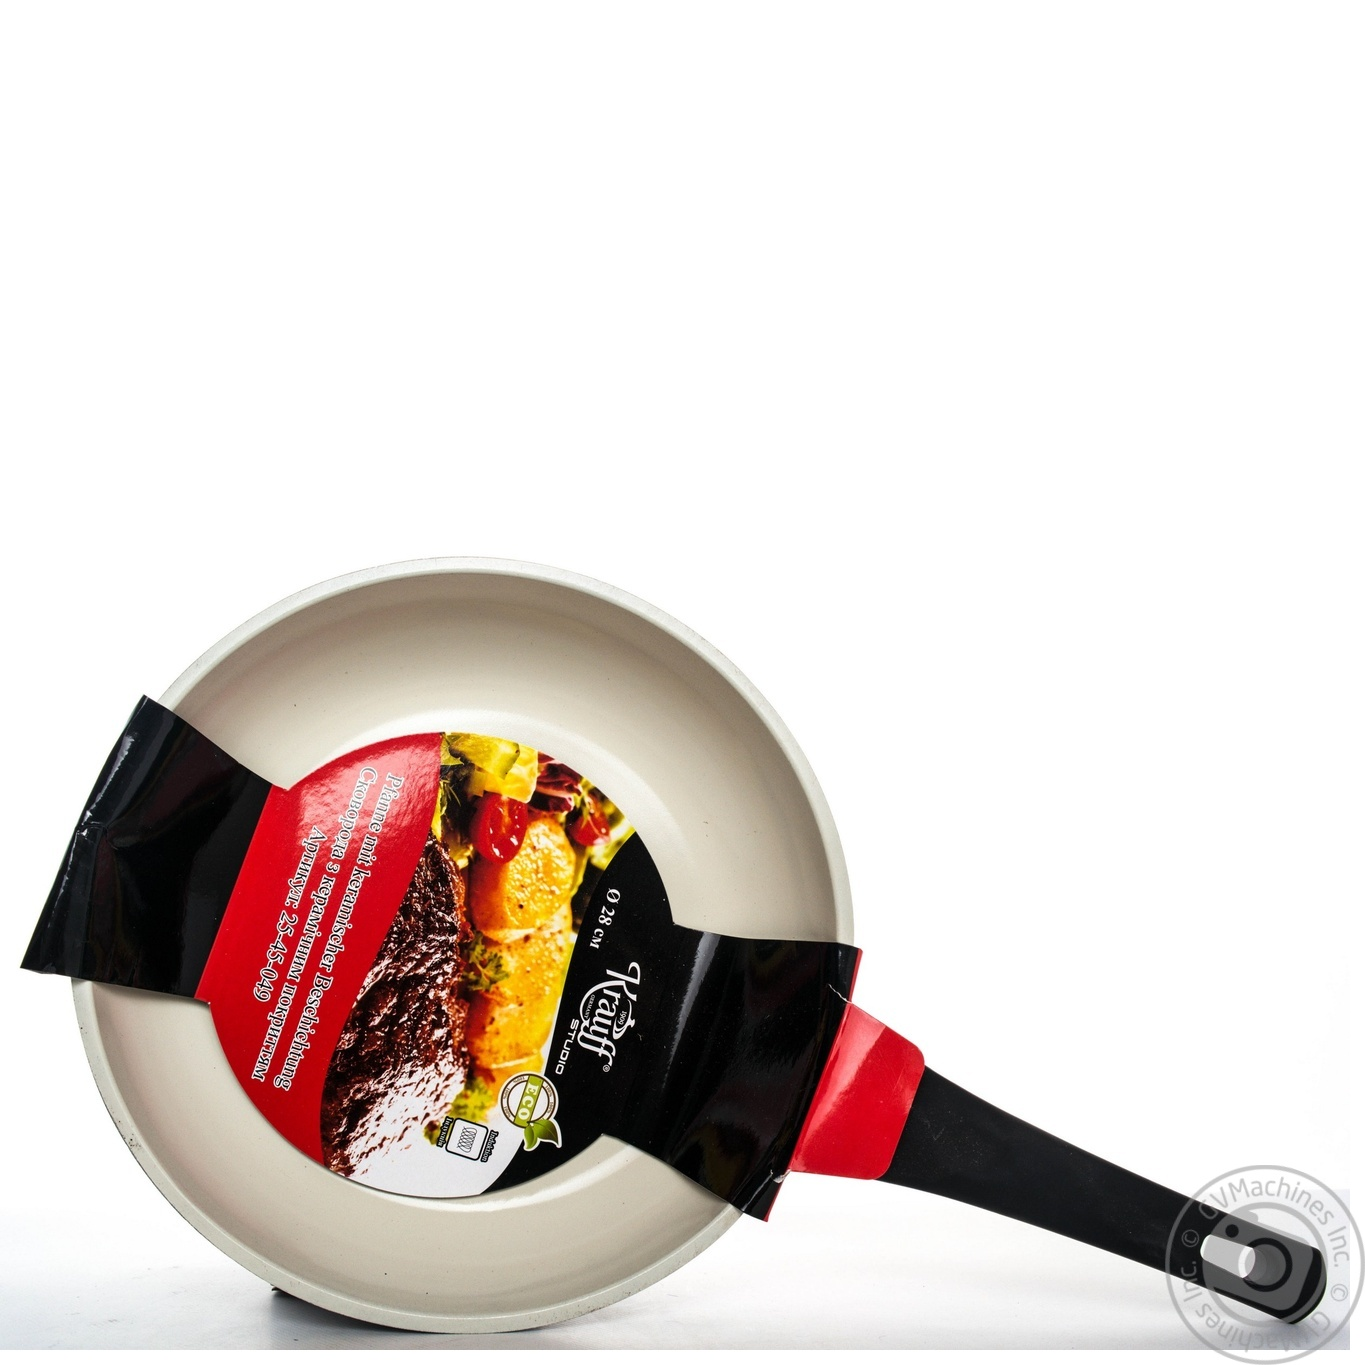 Pan Krauff 280mm Household Kitchenware For Cooking Dishes And Other Kitchen Accessories Zakaz Ua Official Online Grocery Supermarkets